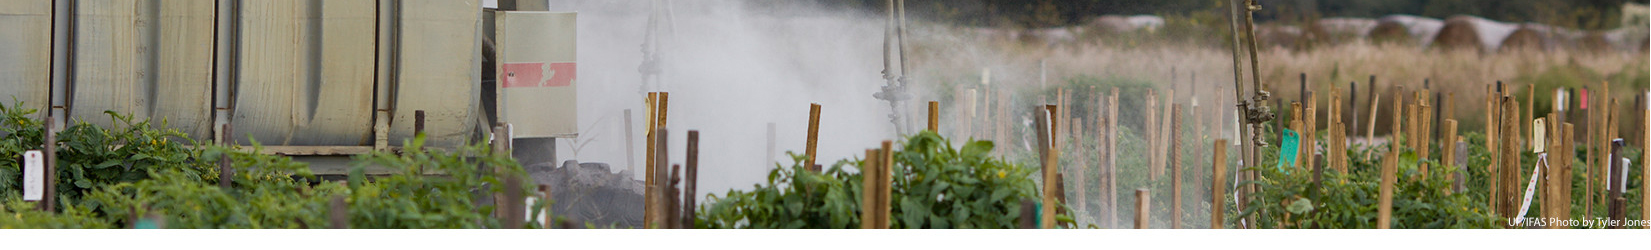 Pesticide spraying in a tomato field. UF/IFAS photo by Tyler Jones.